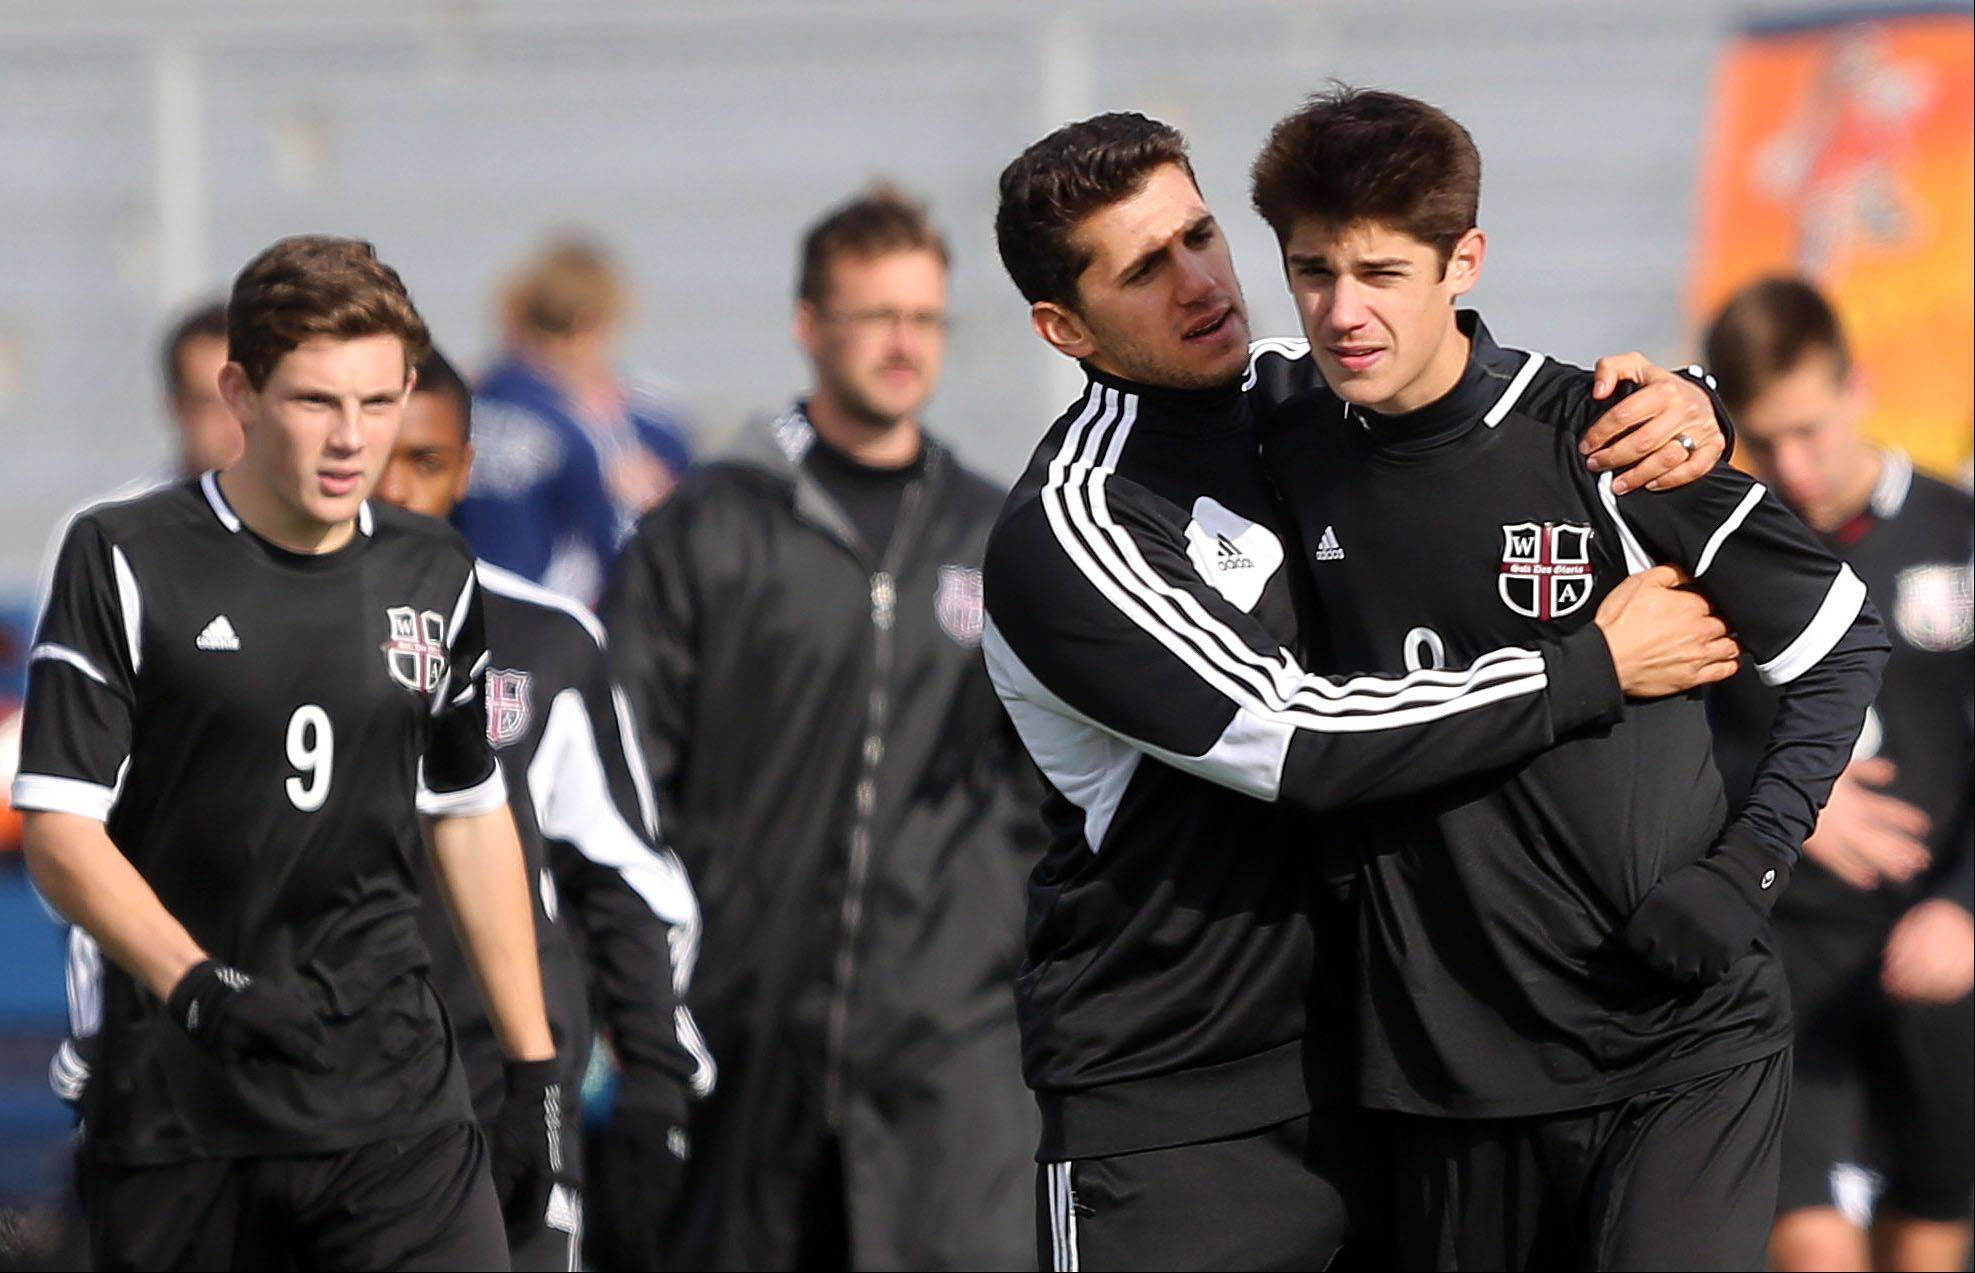 Wheaton Academy's Grant Rougas, right, is consoled by teammates after missing a kick in their shootout loss to St. Ignatius in Class 2A state semifinal game at Hoffman Estates High School Friday.